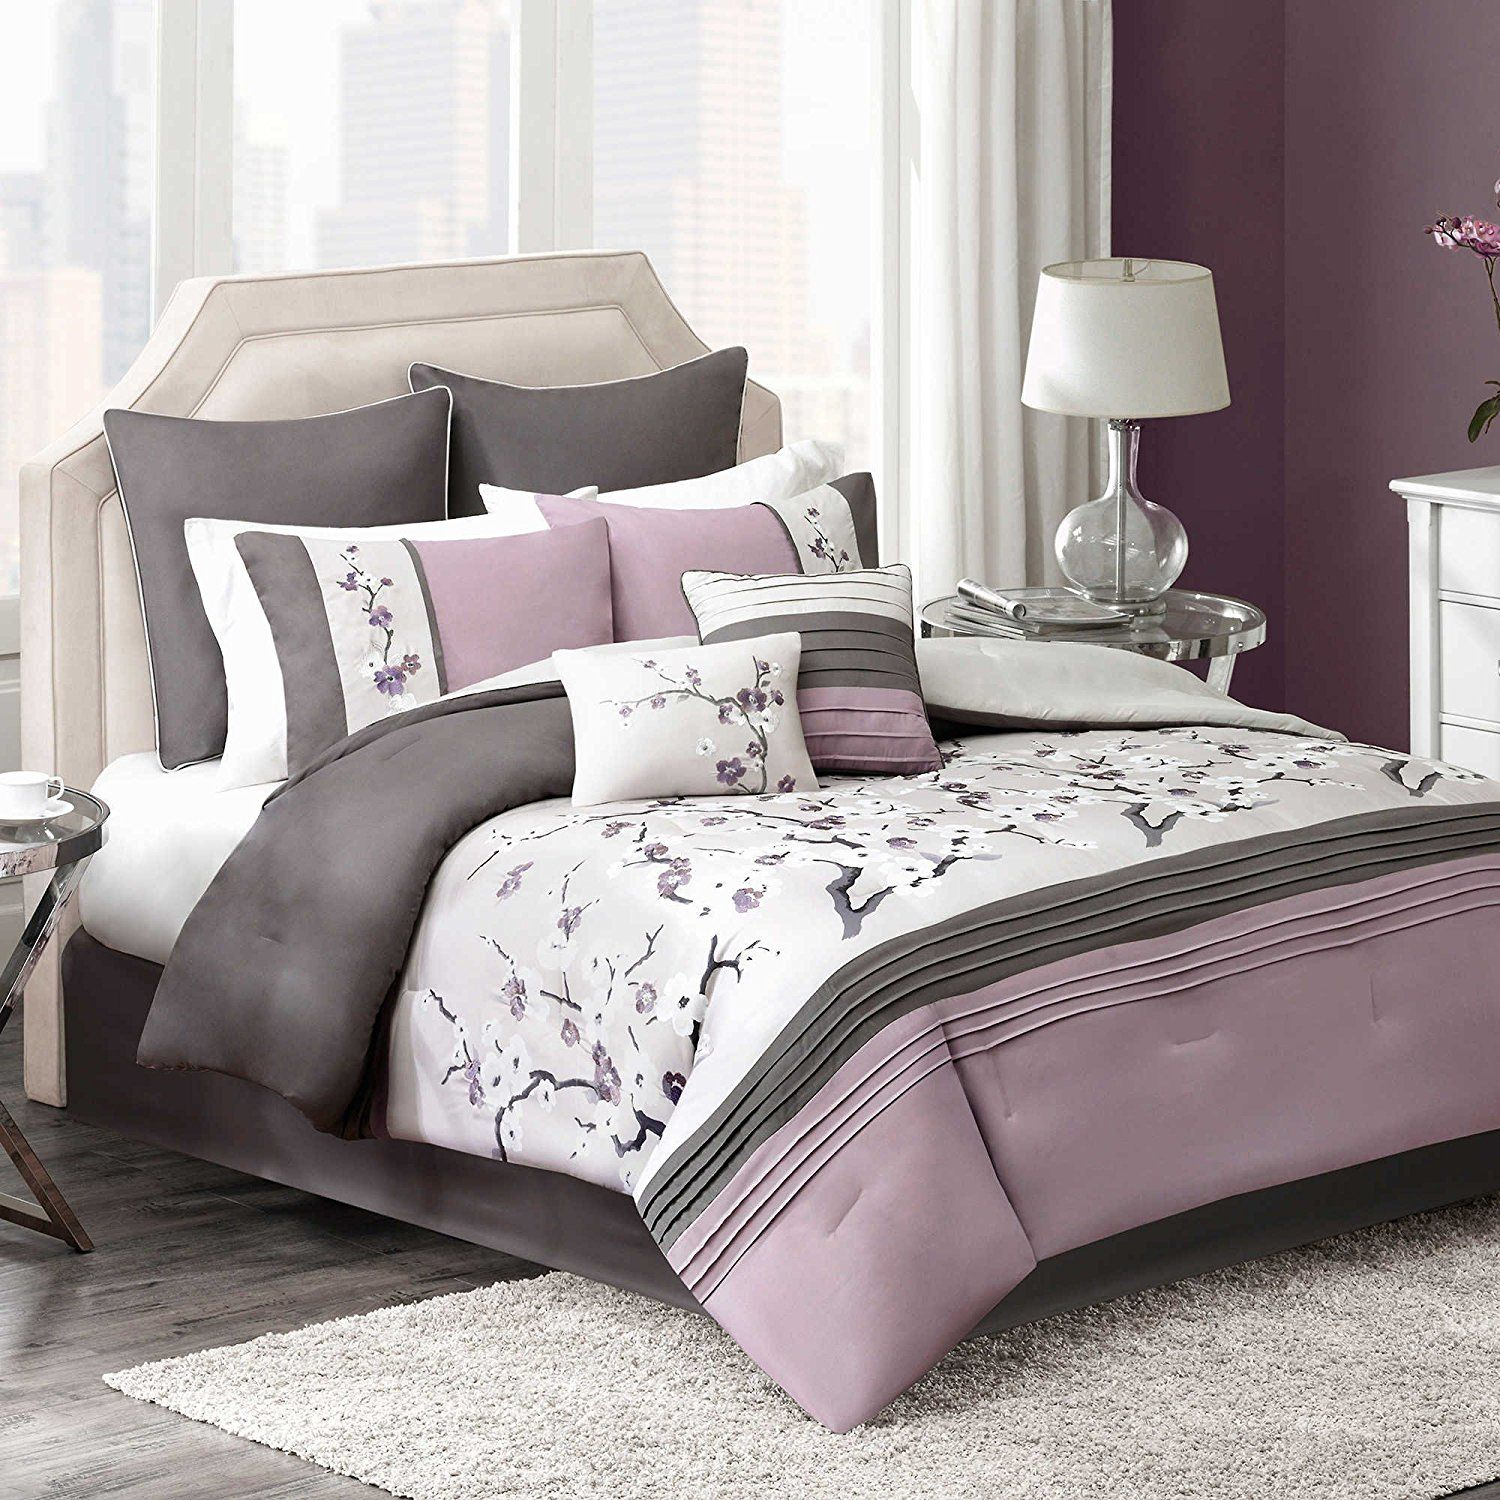 Plum Bedding Floral Embroidered forter Set for Teen Girls KING